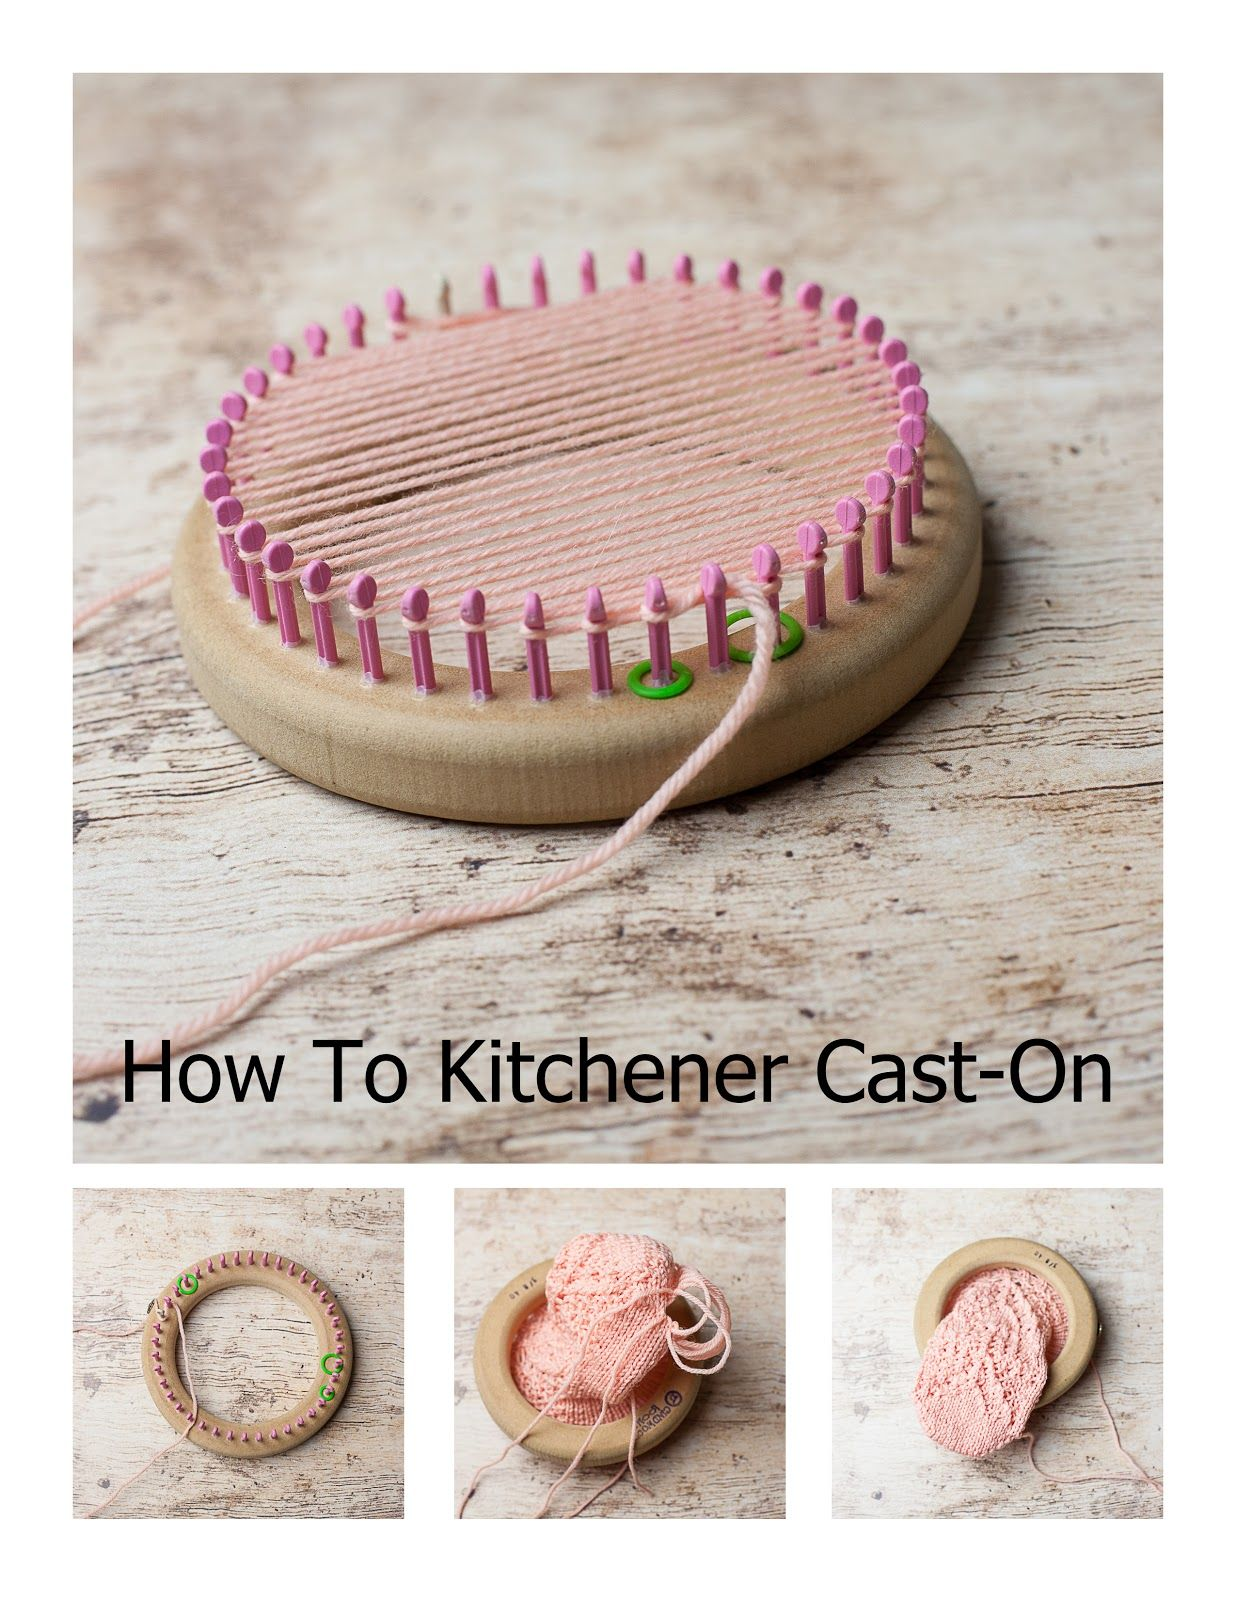 How To Kitchener Cast-On The Loom!